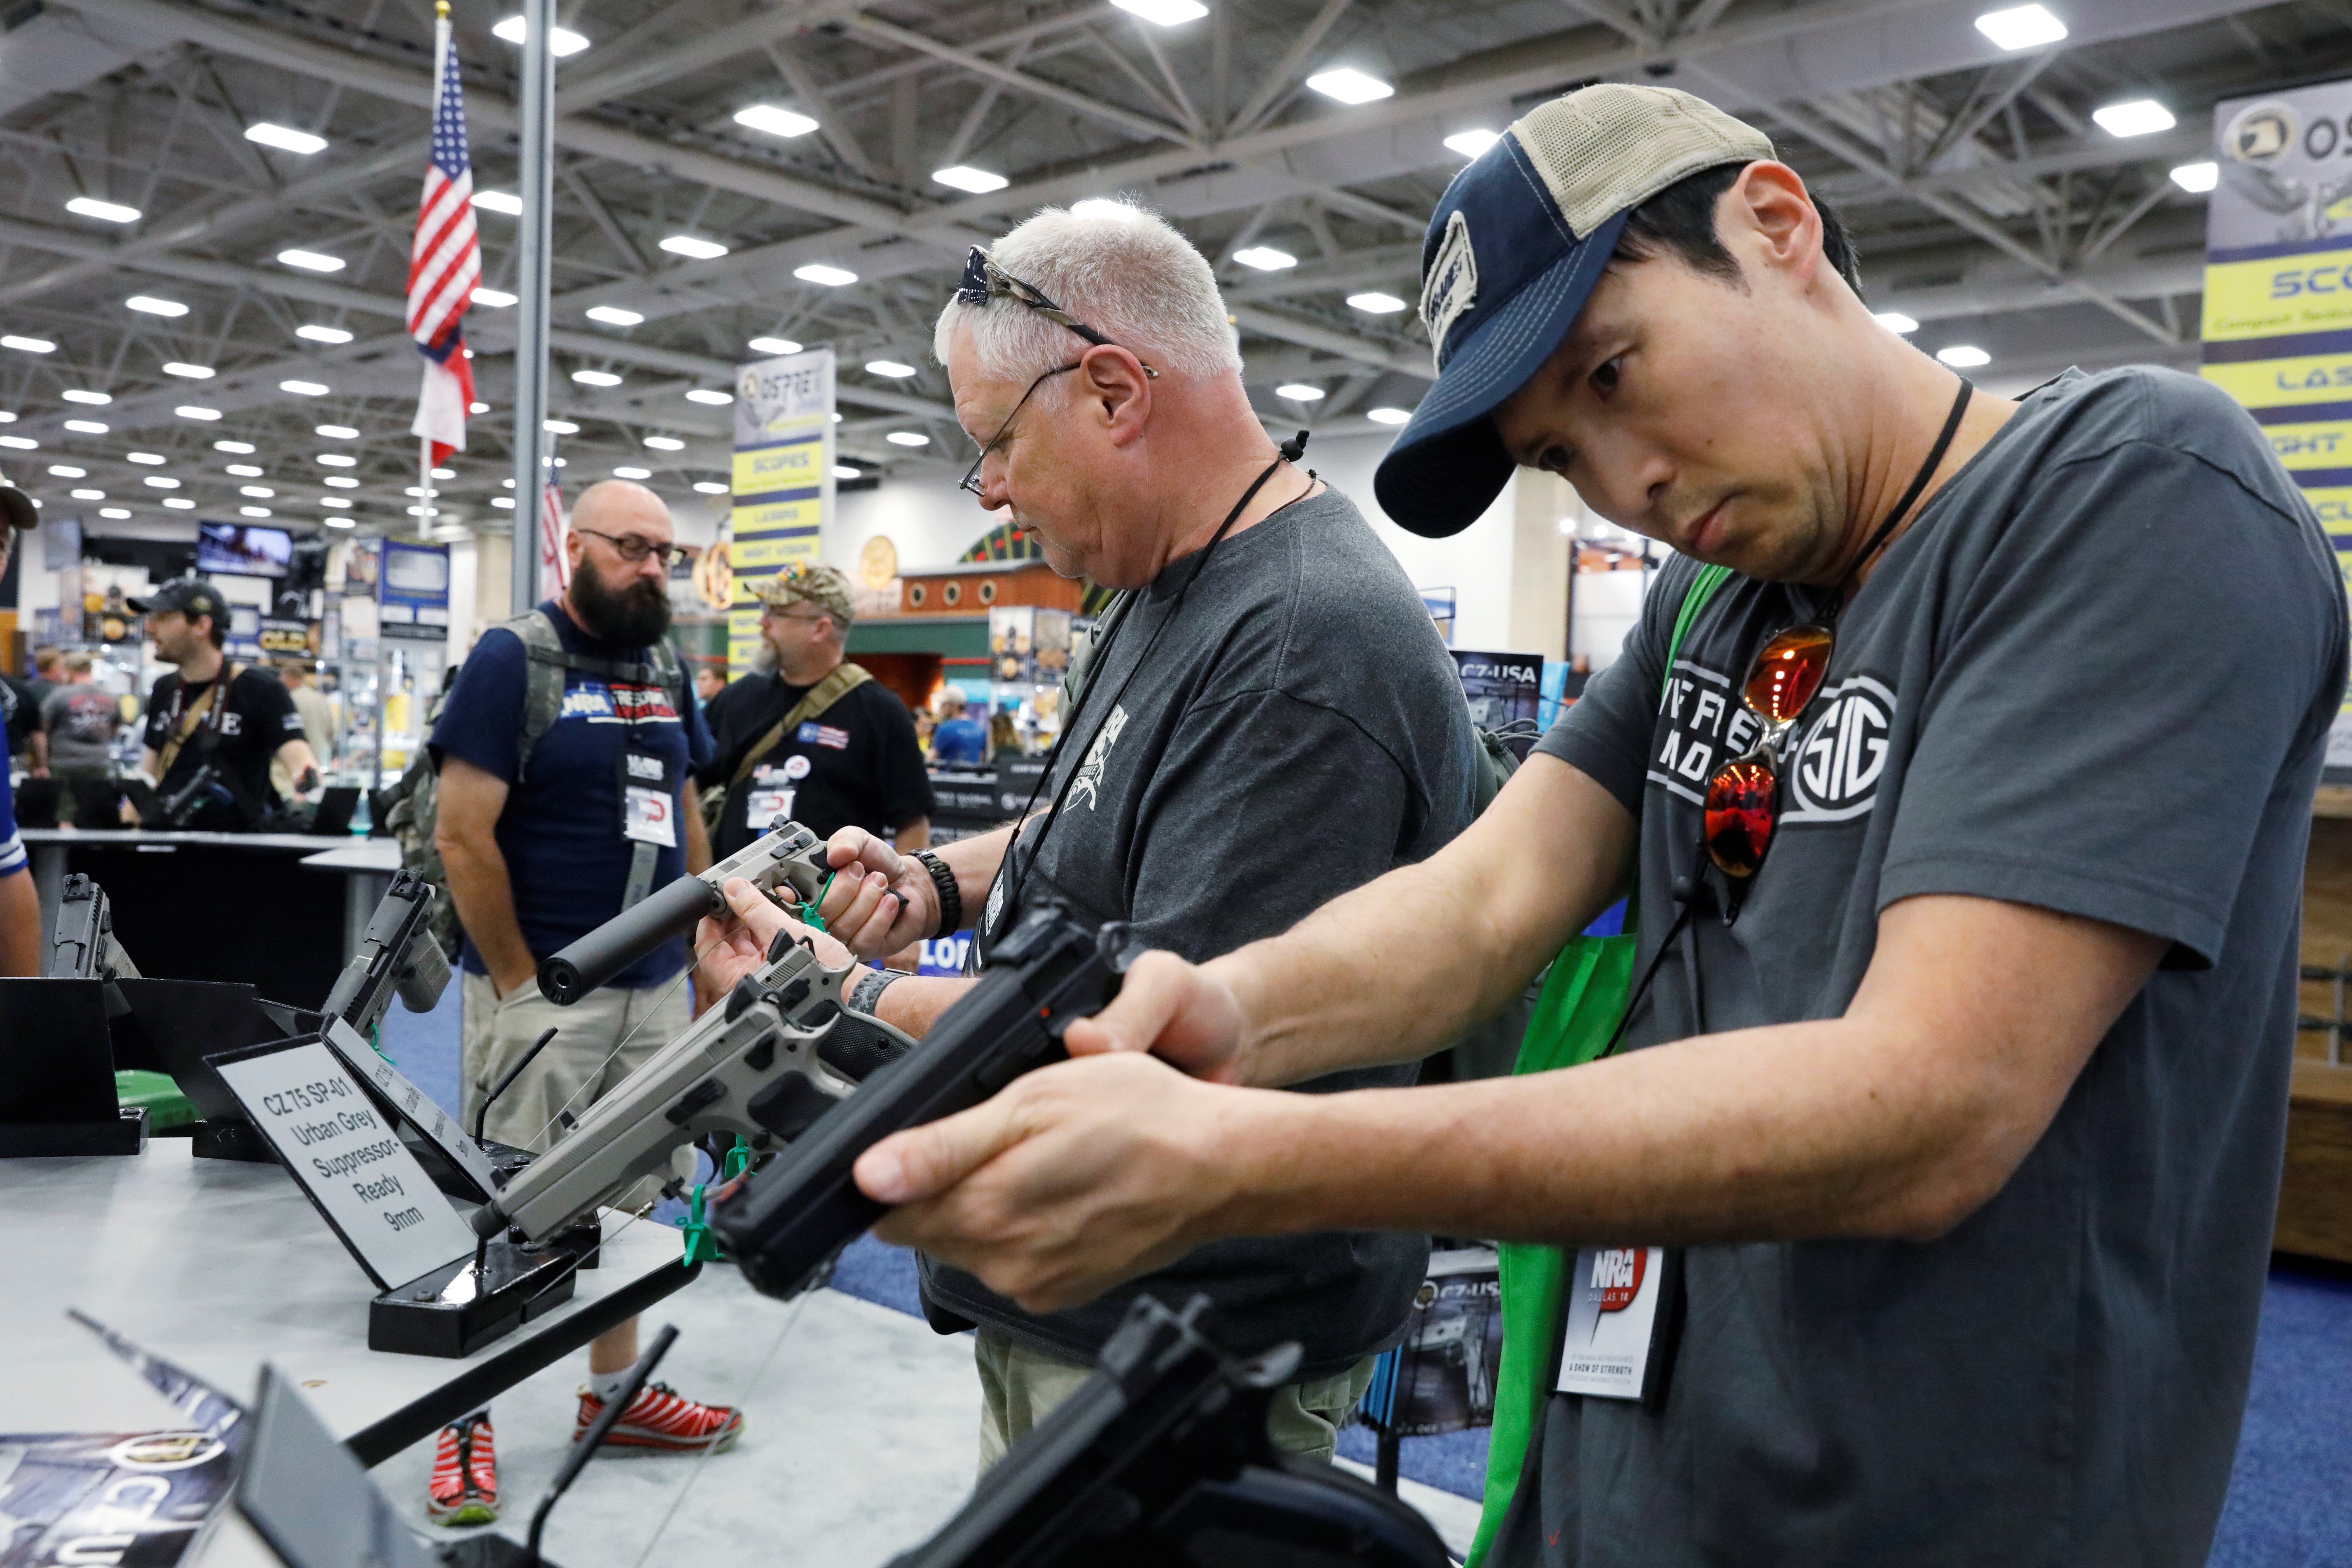 Gun enthusiasts inspect firearms during the annual National Rifle Association (NRA) convention in Dallas, Texas, U.S., May 5, 2018. REUTERS/Lucas Jackson